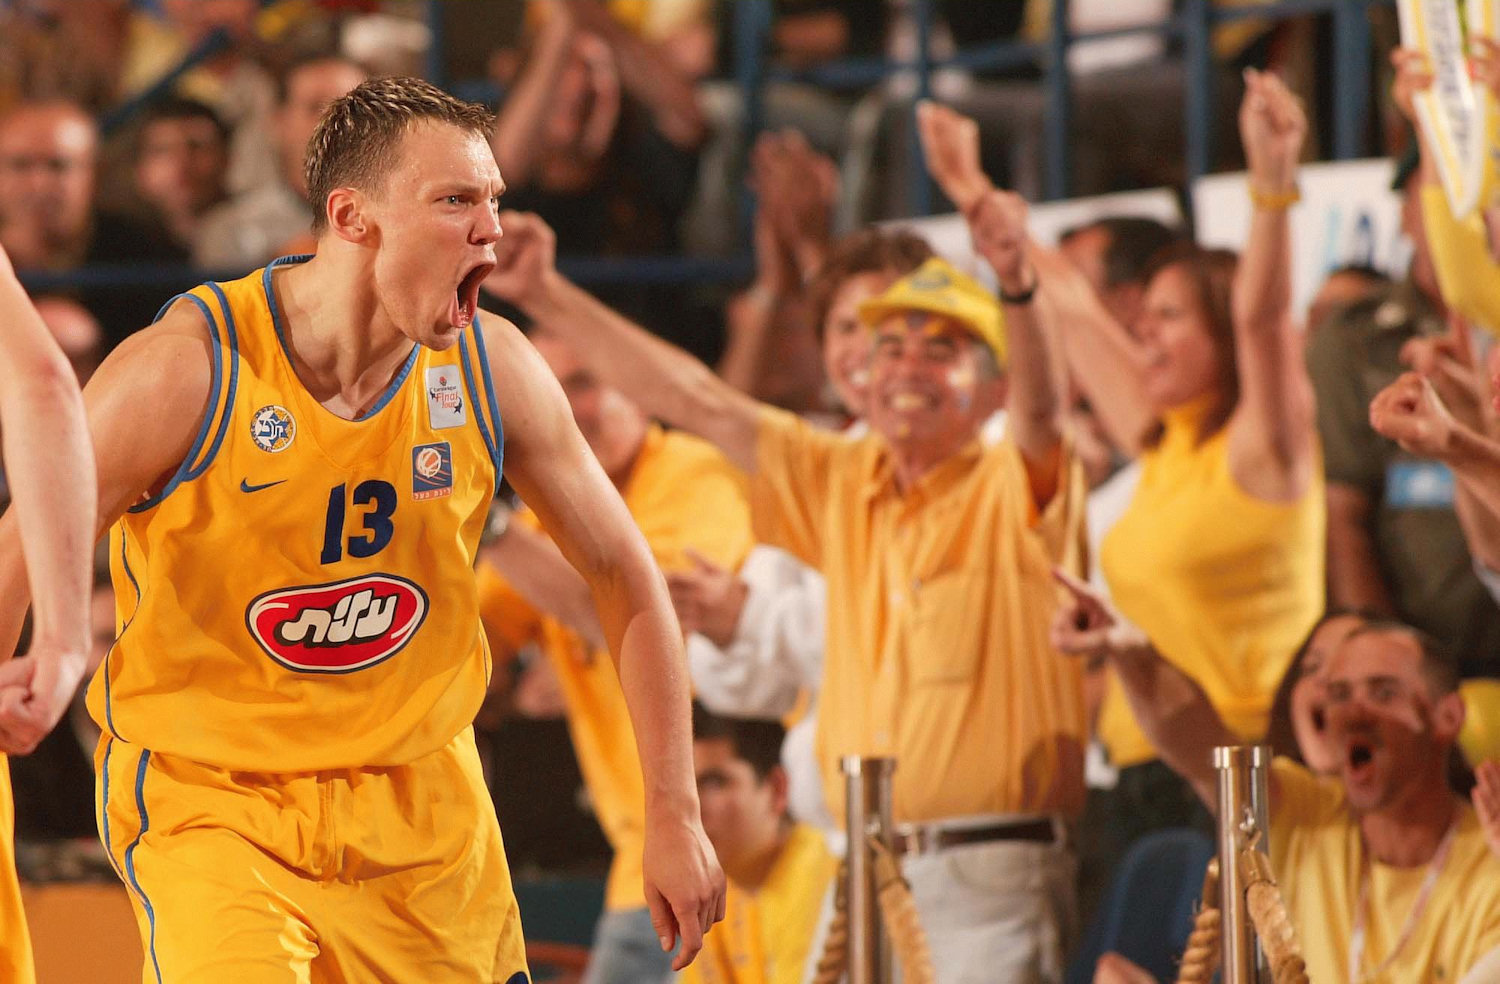 Sarunas Jasikevicius celebrates - Final Four Maccabi 2004 - EB03